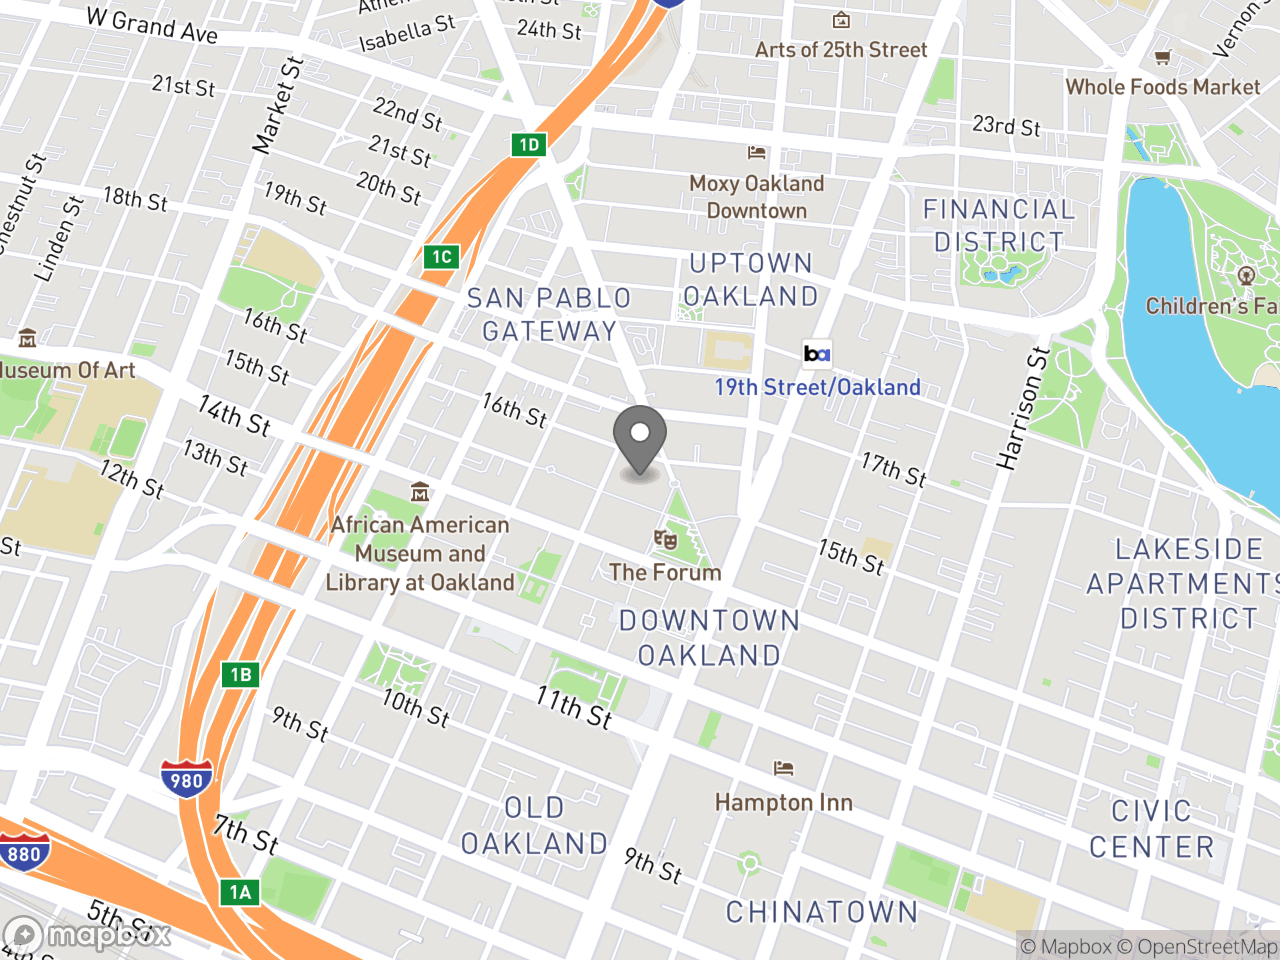 Map location for Finance, located at 250 Frank H. Ogawa Plaza in Oakland, CA 94612